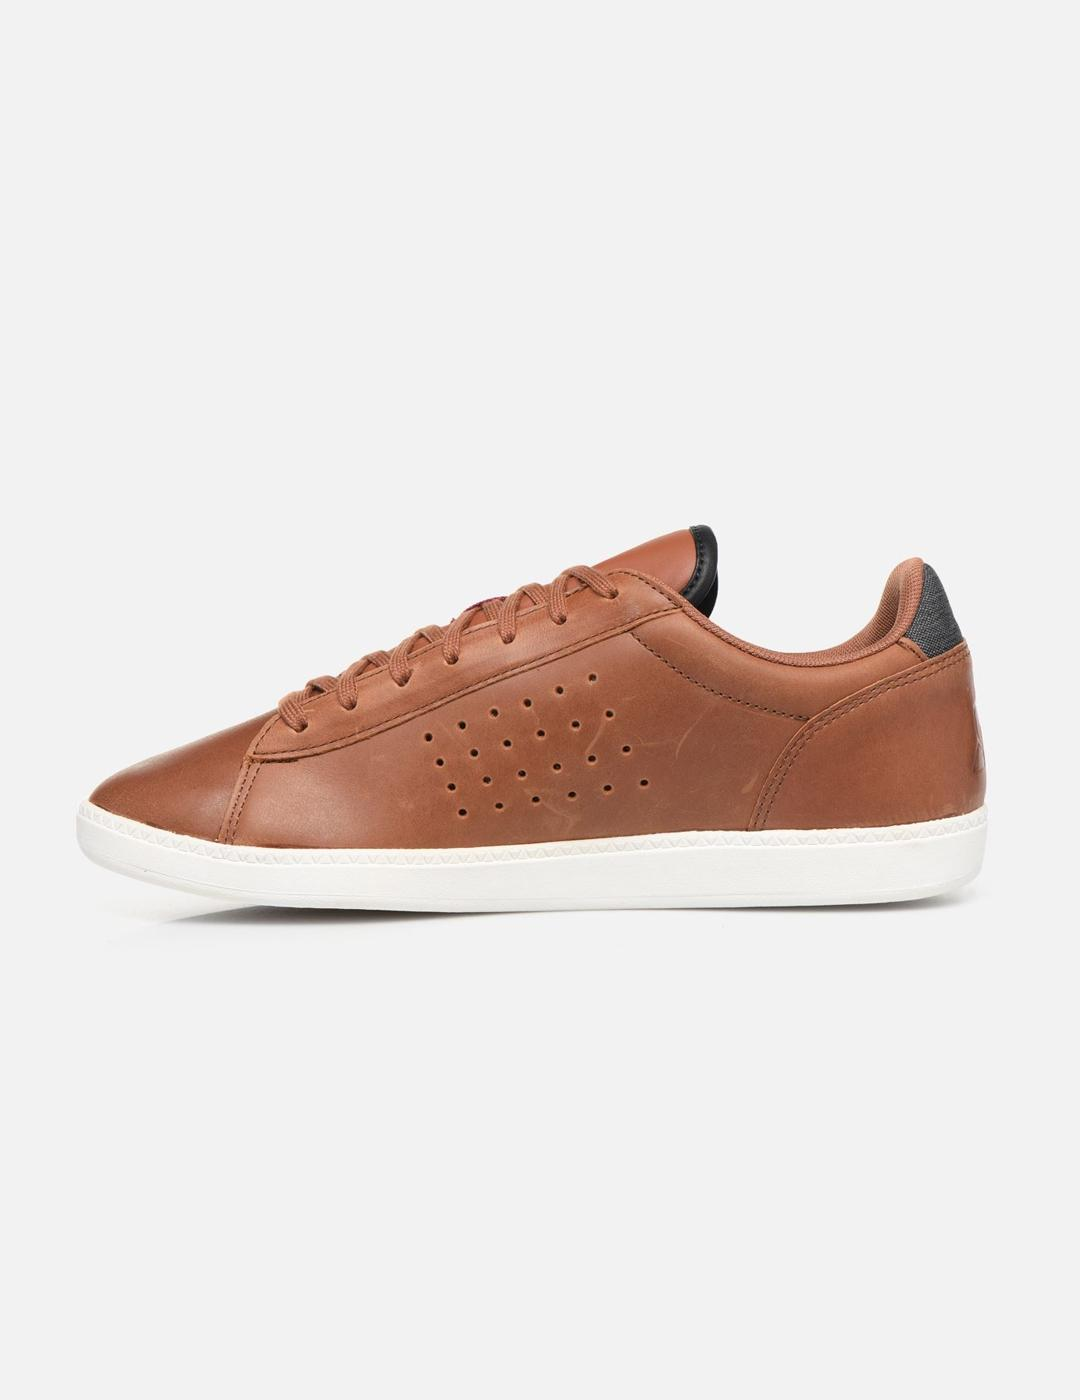 Zapatillas COURTSTAR WINTER LEATHER - CINNAMON